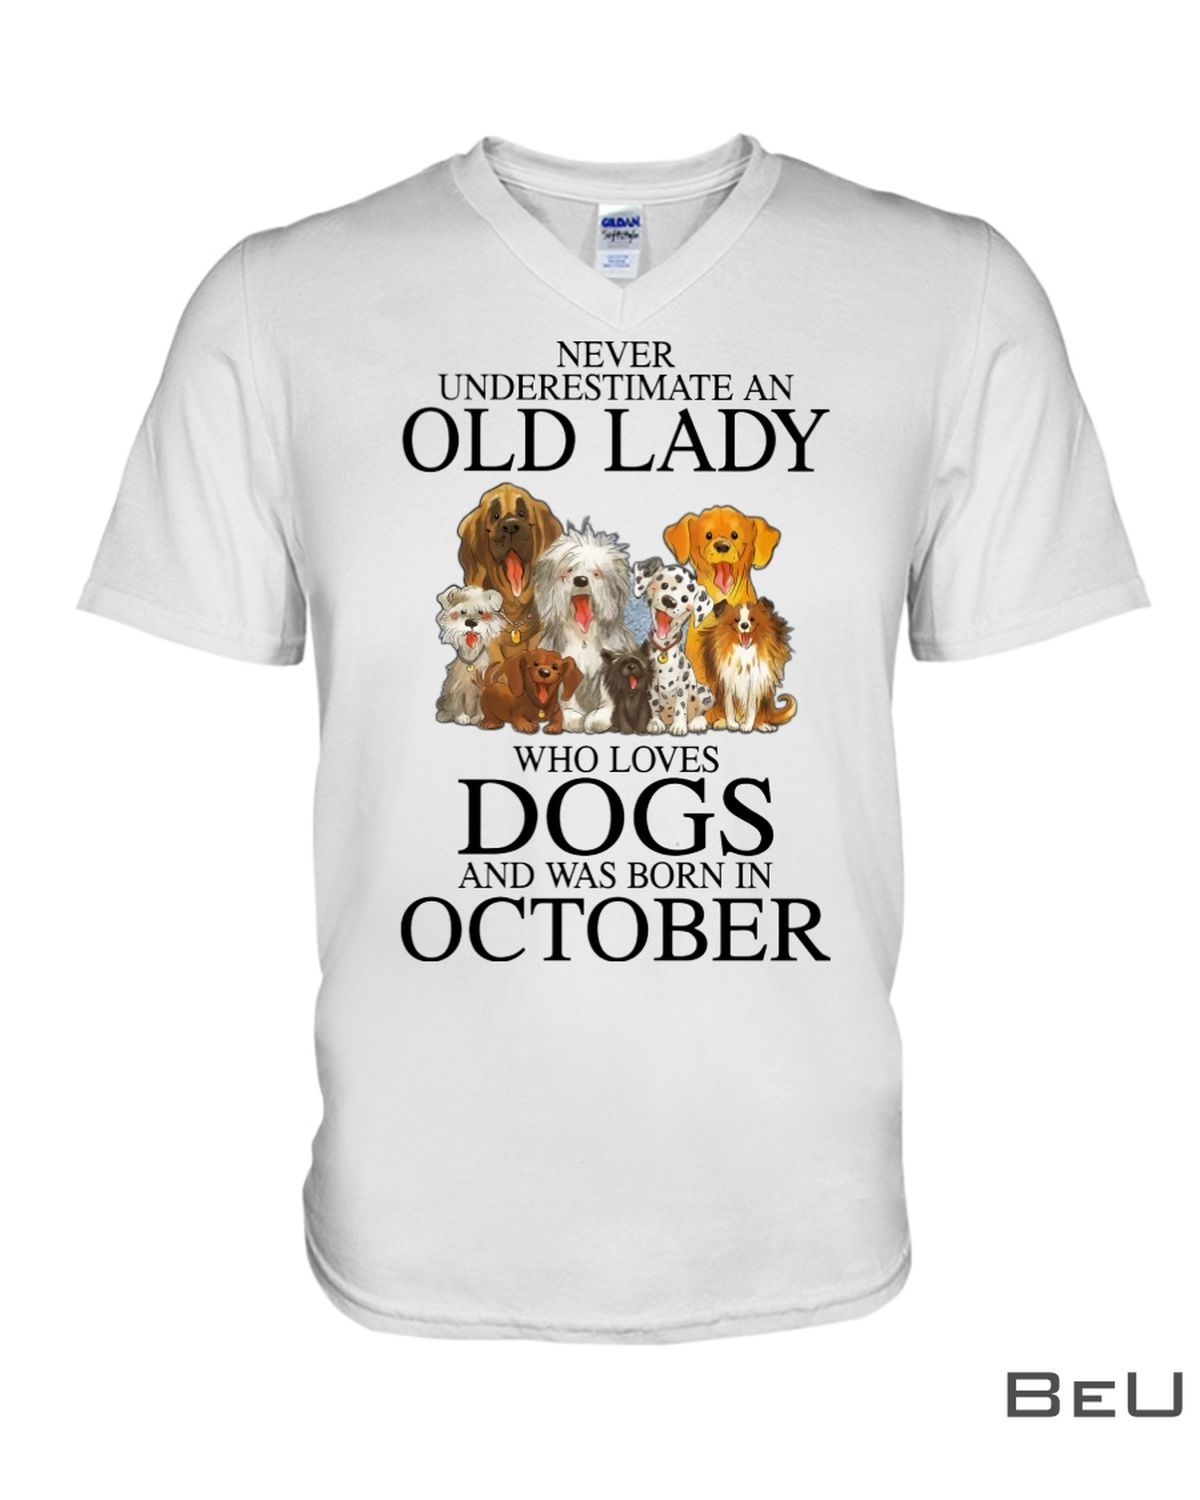 Never Underestimate An October Old Lady Who Loves Dogs Shirtx